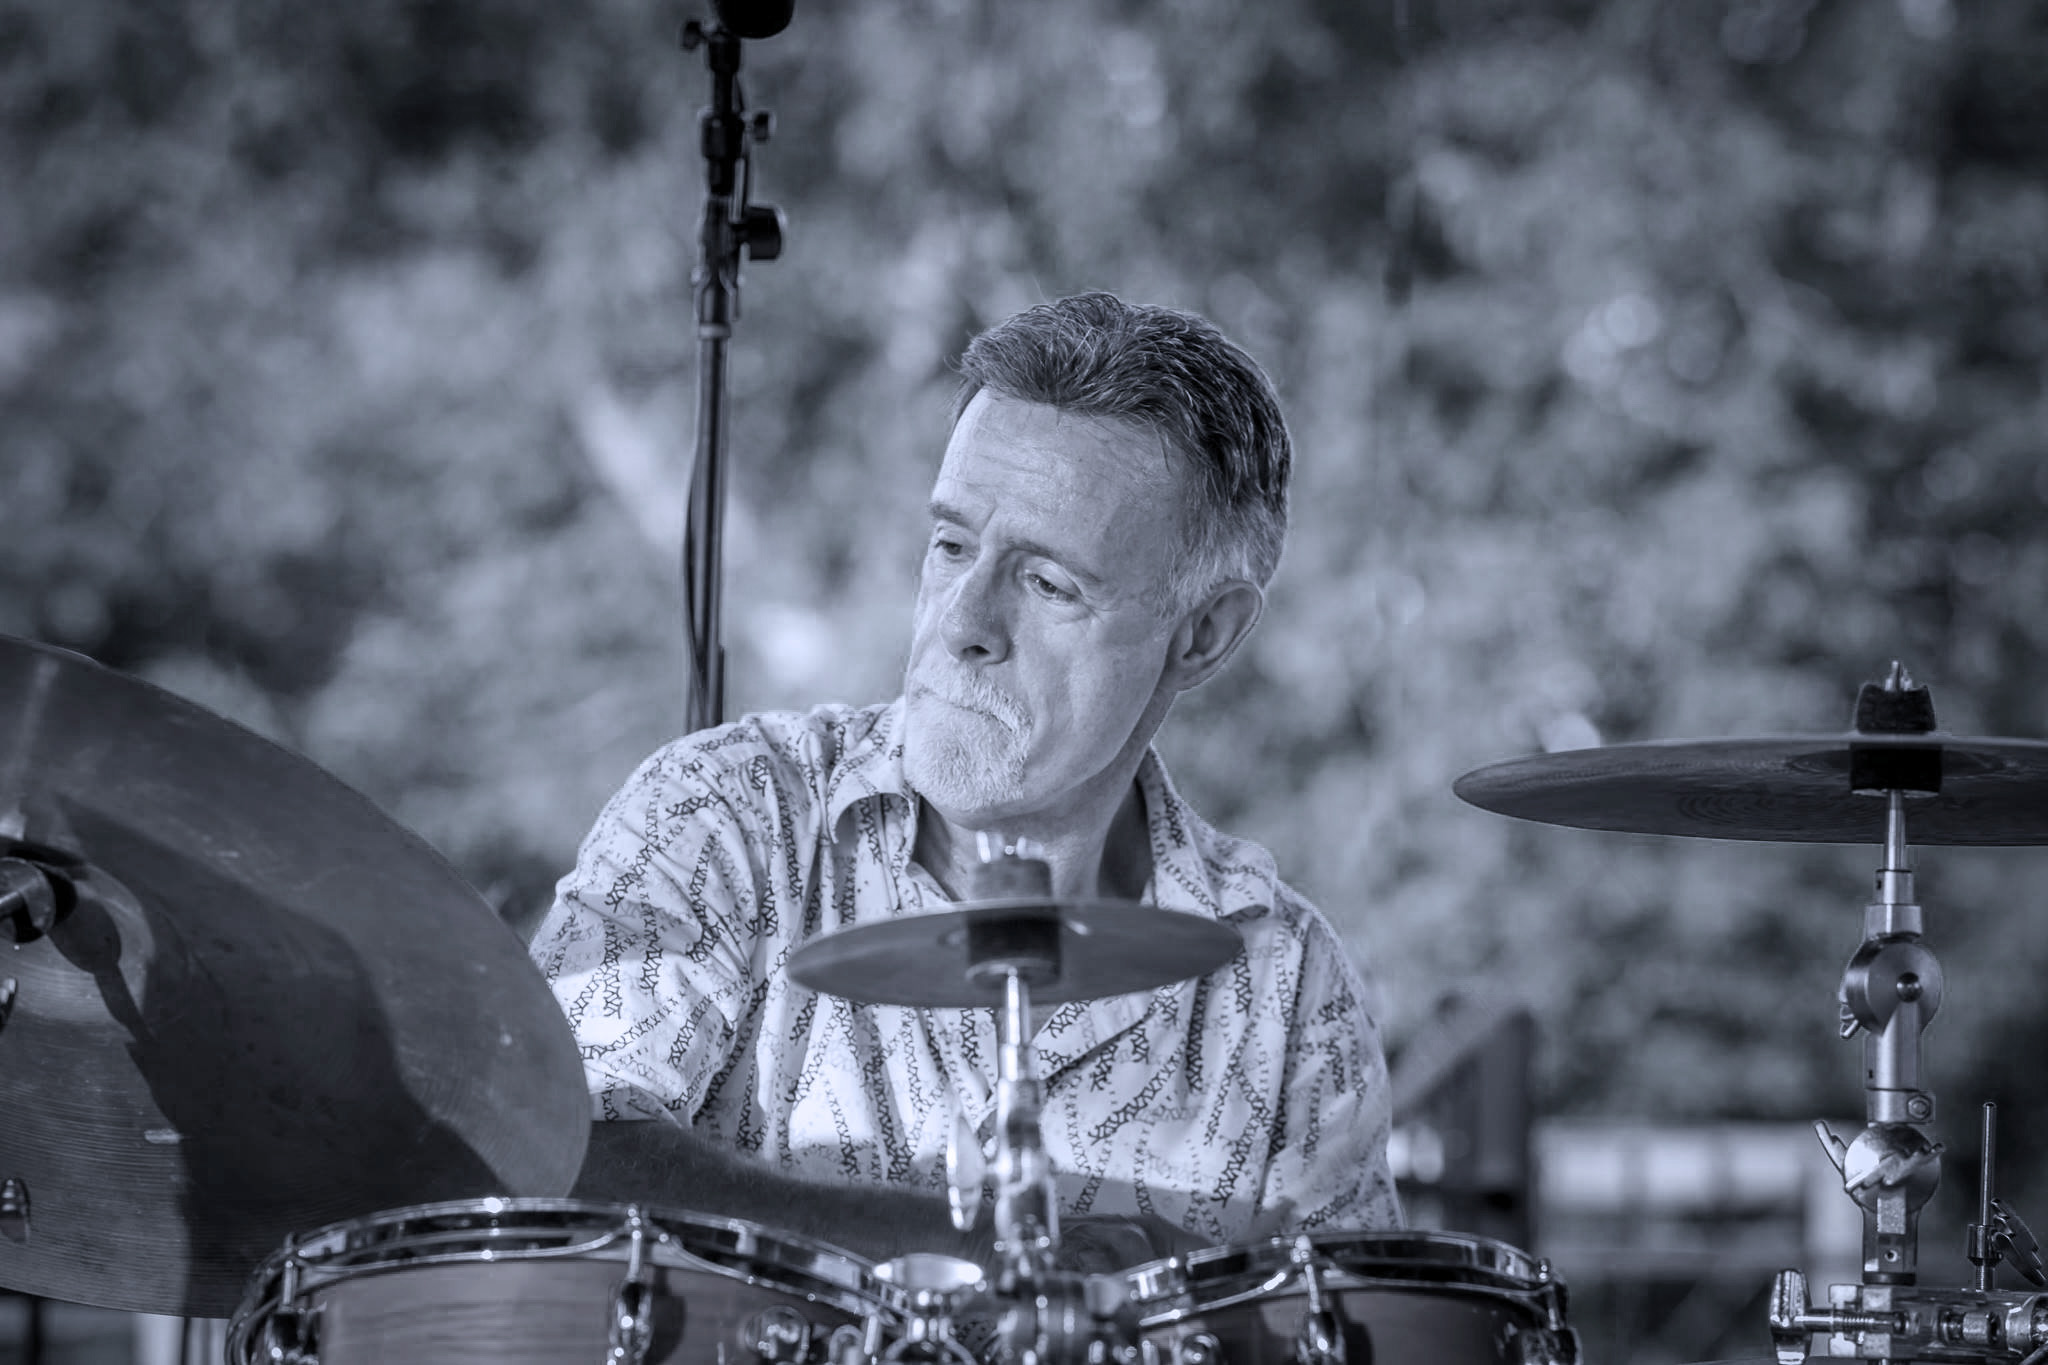 Dave Hanlon Drums Funky Jazz Band Syracuse New York